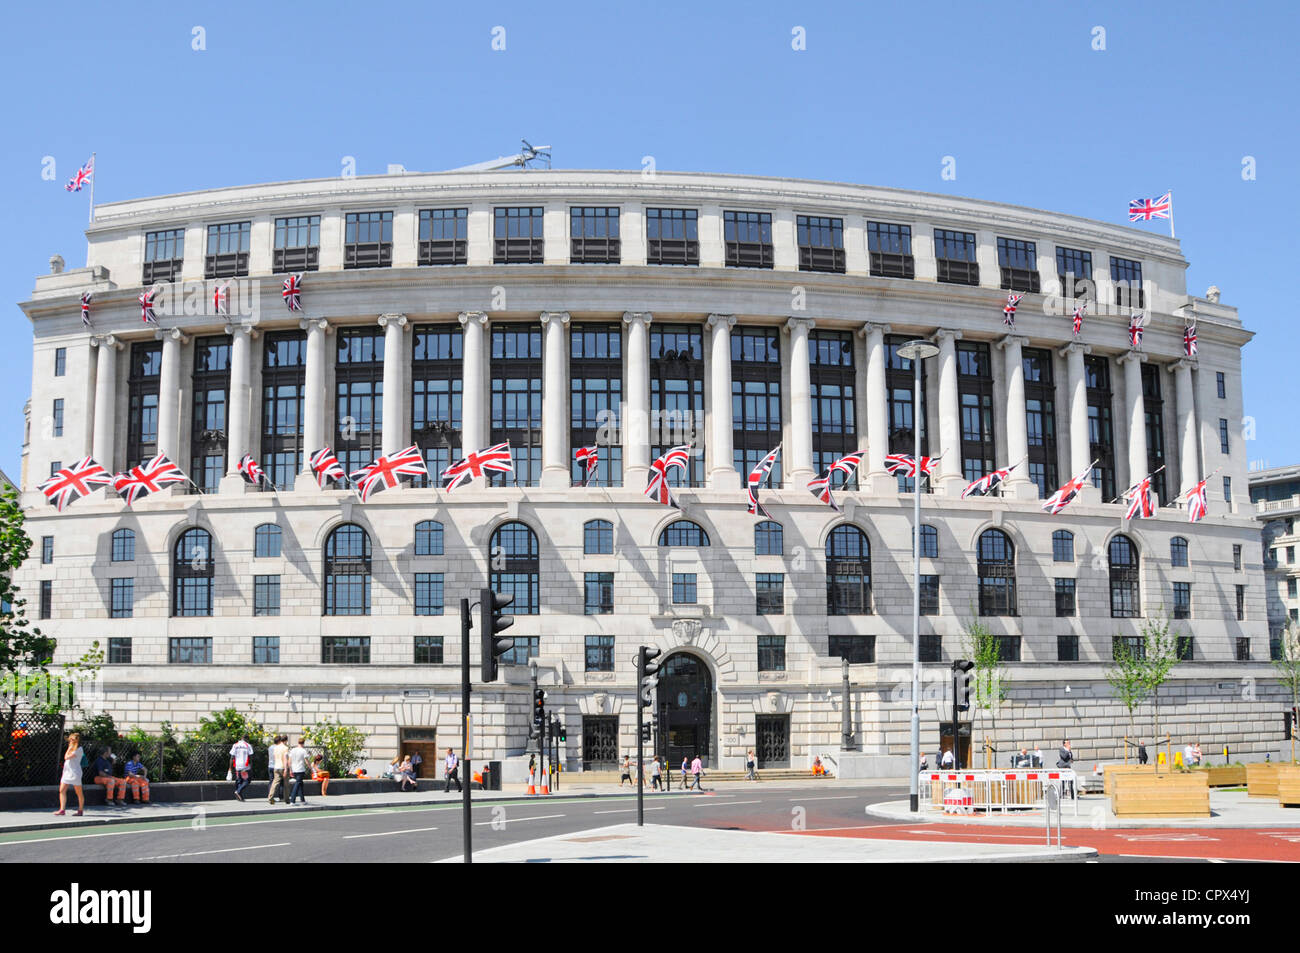 Unilever House headquarters curved building with union jackl flags Blackfriars City of London England UK - Stock Image